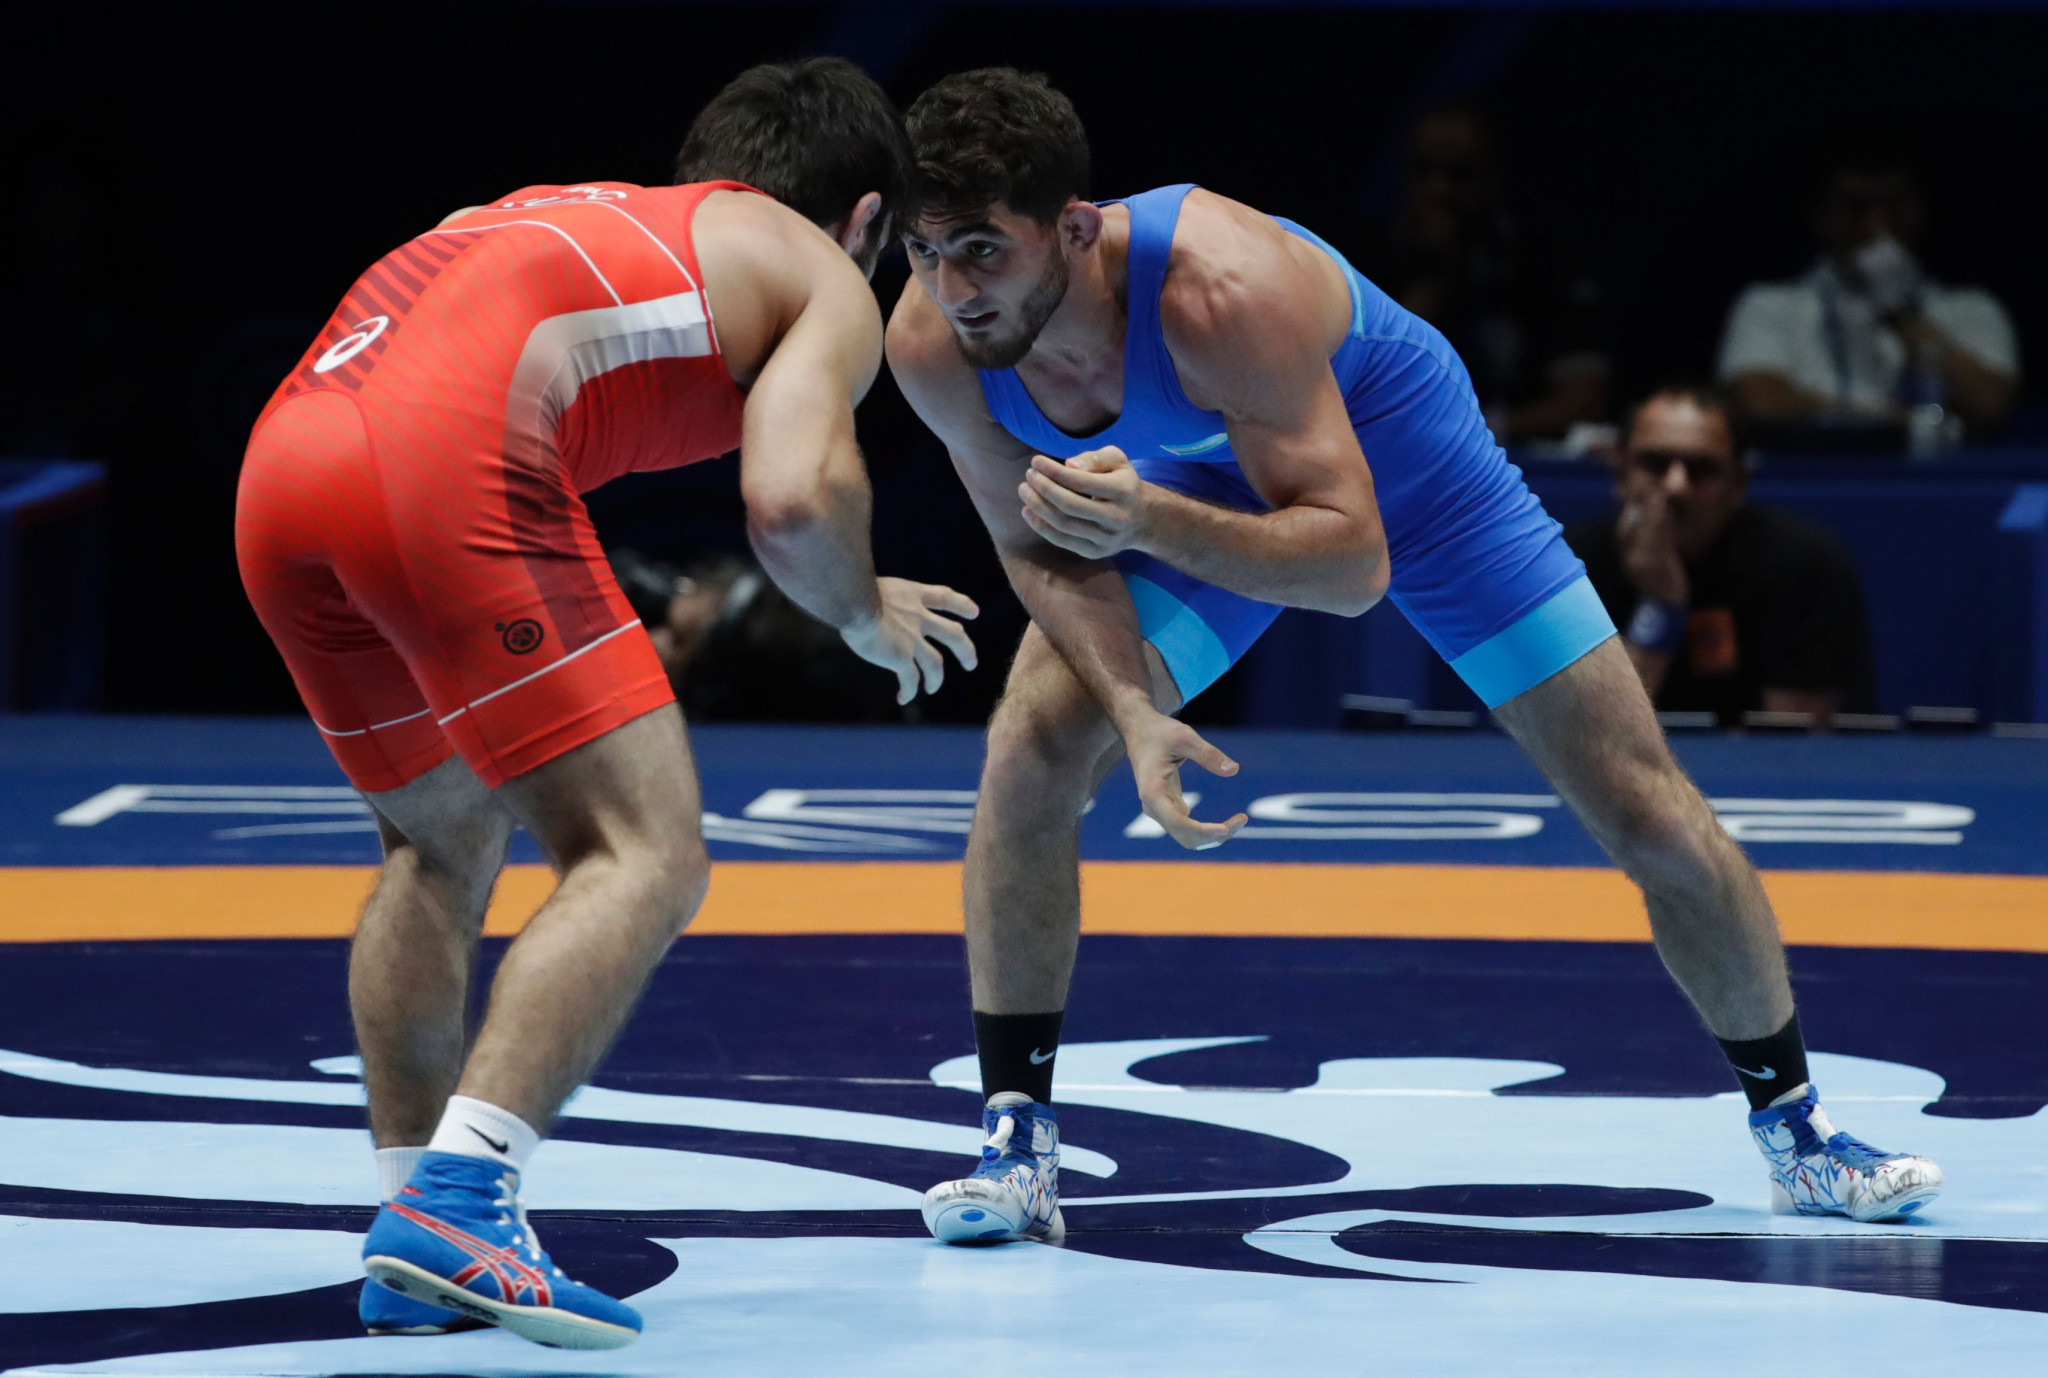 Astana in Kazakhstan will host the 2019 Senior Wrestling World Championships ©Getty Images